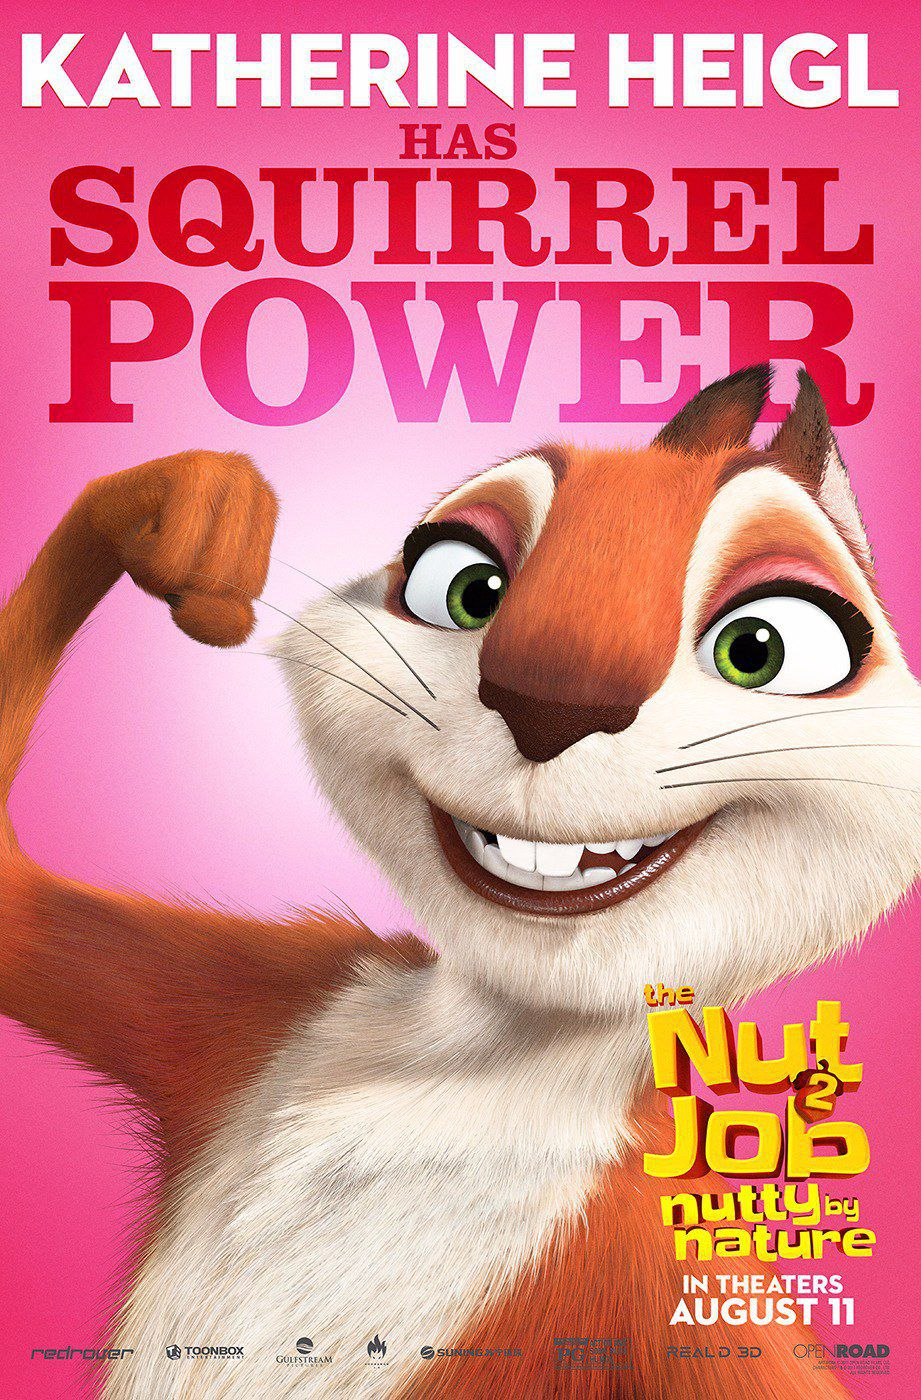 Film - The Nut Job 2 - Operazione Nocciolina 2 - Nutty by Nature - Squirrel Power